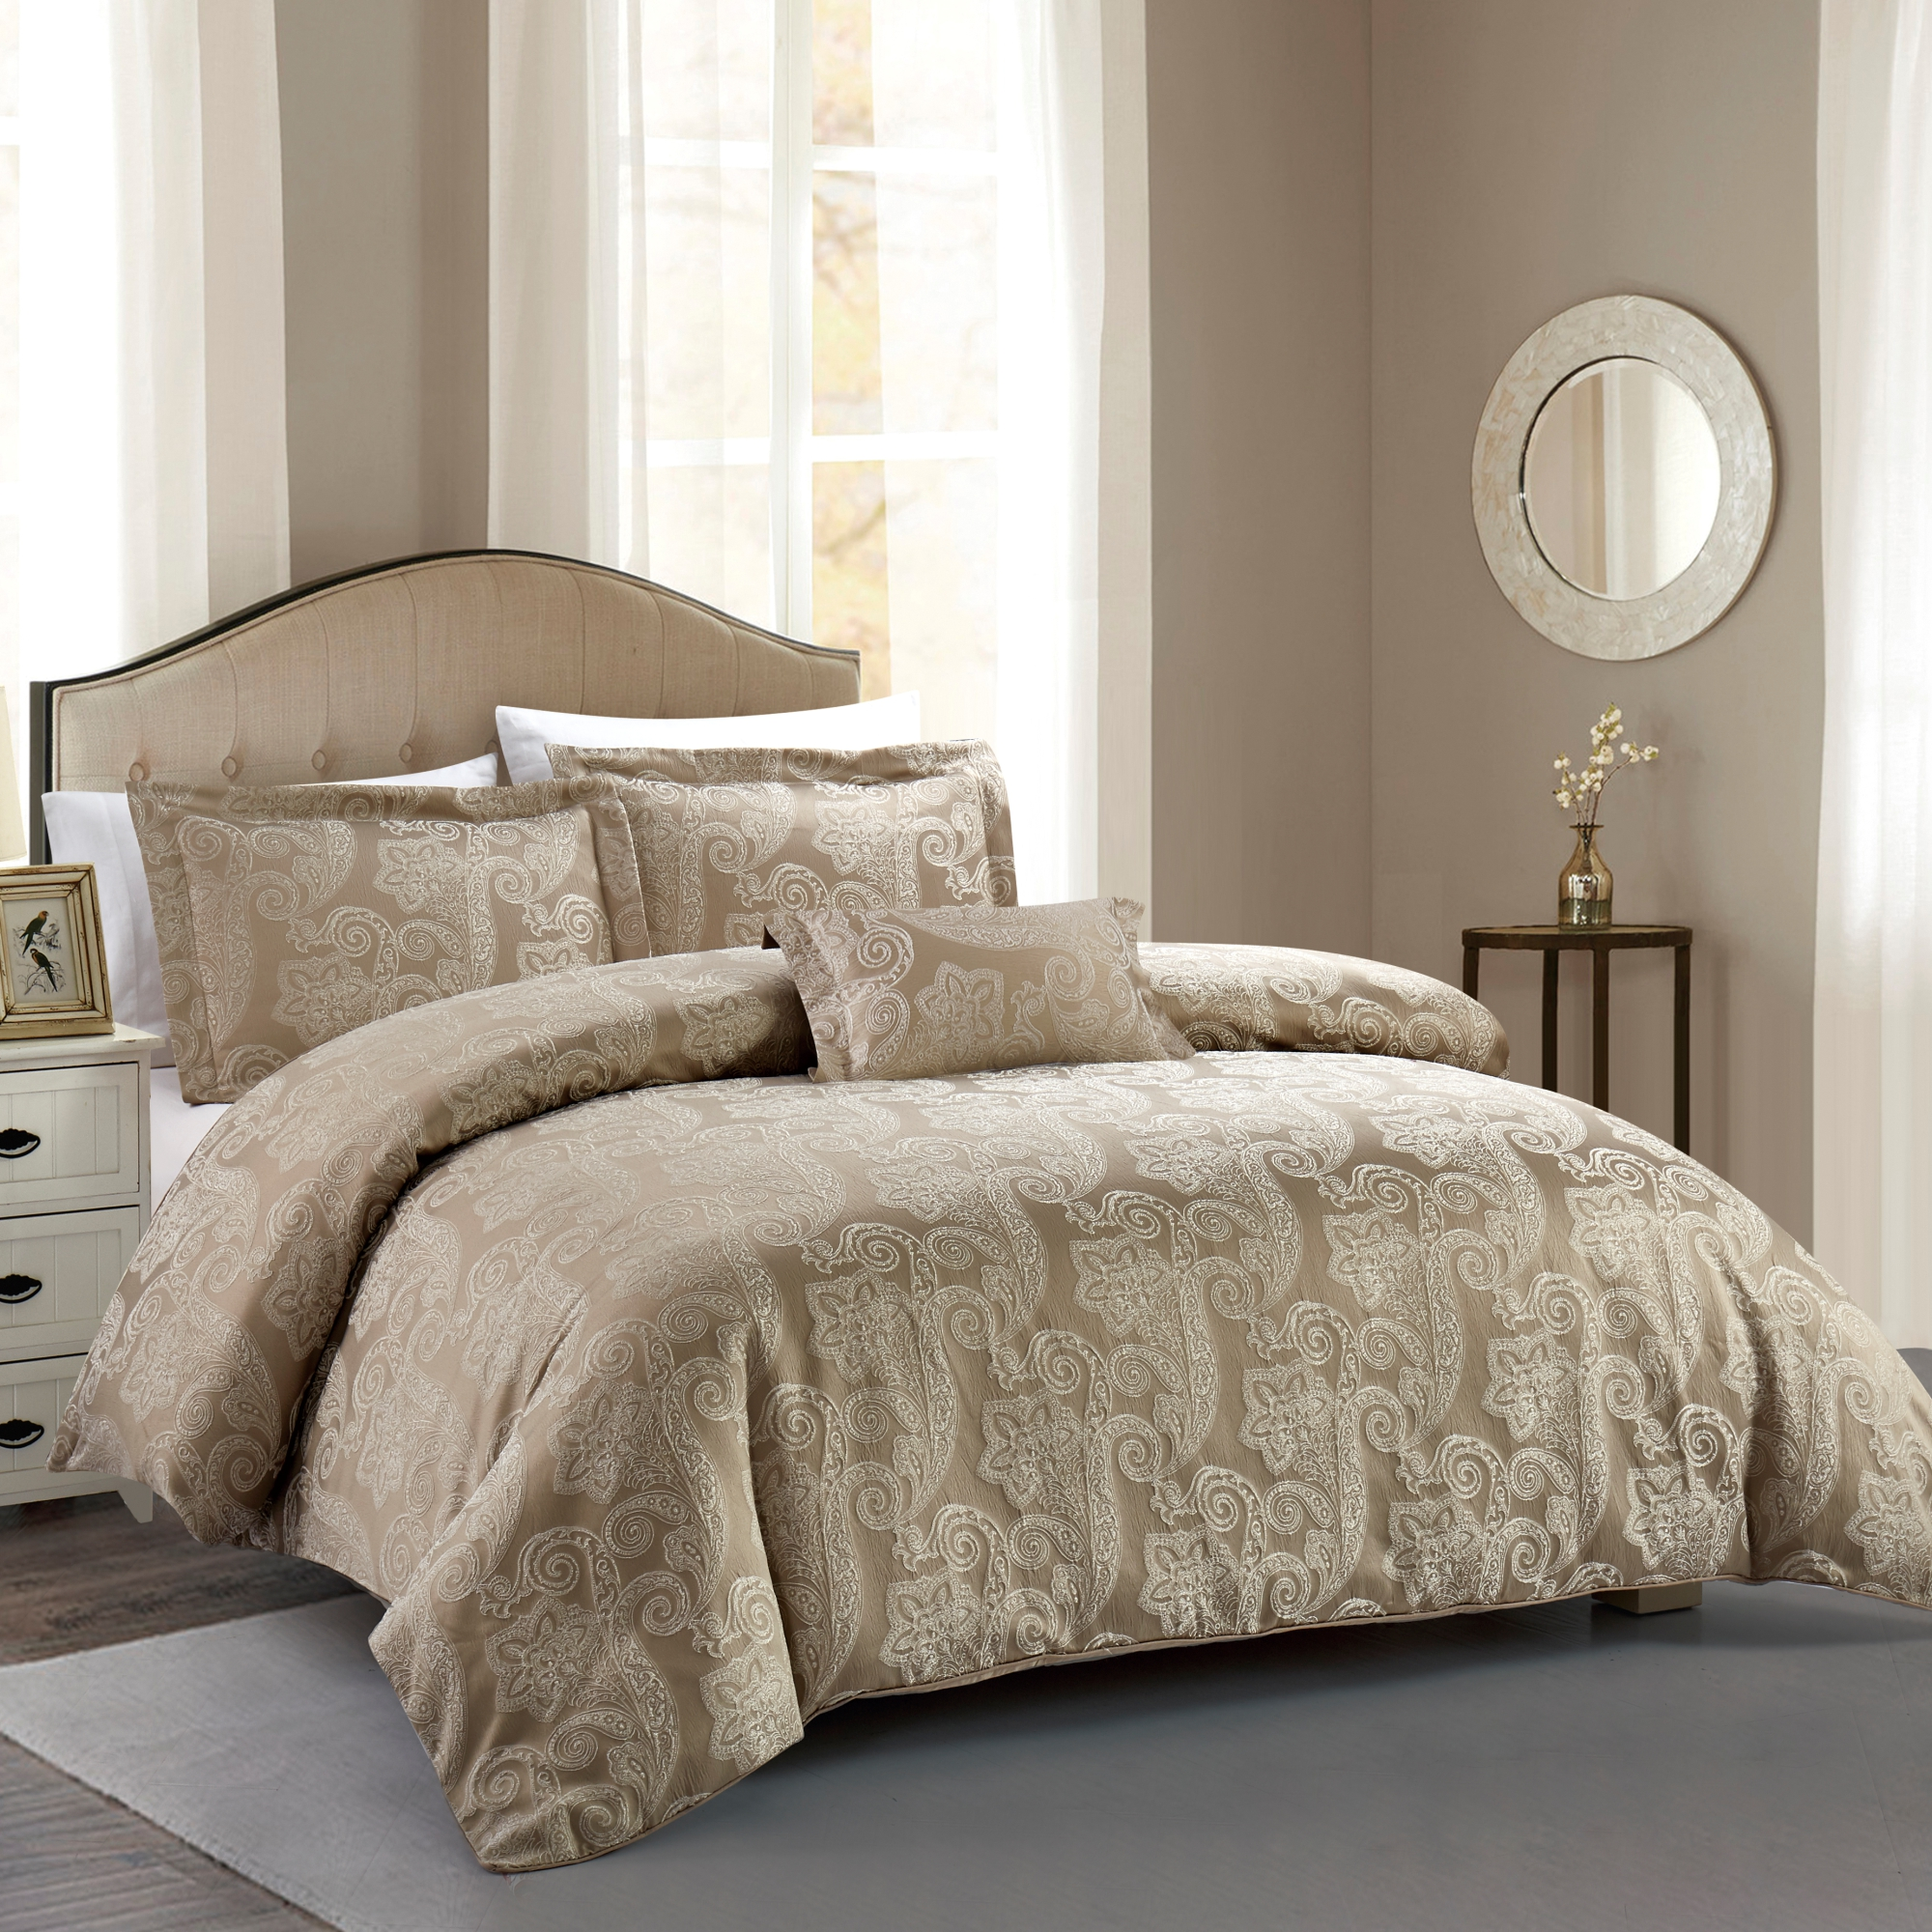 Hotel Paisley Luxe Down Alternative Comforter Set Royal Taupe, Full/Queen 4 Piece by California Design Den